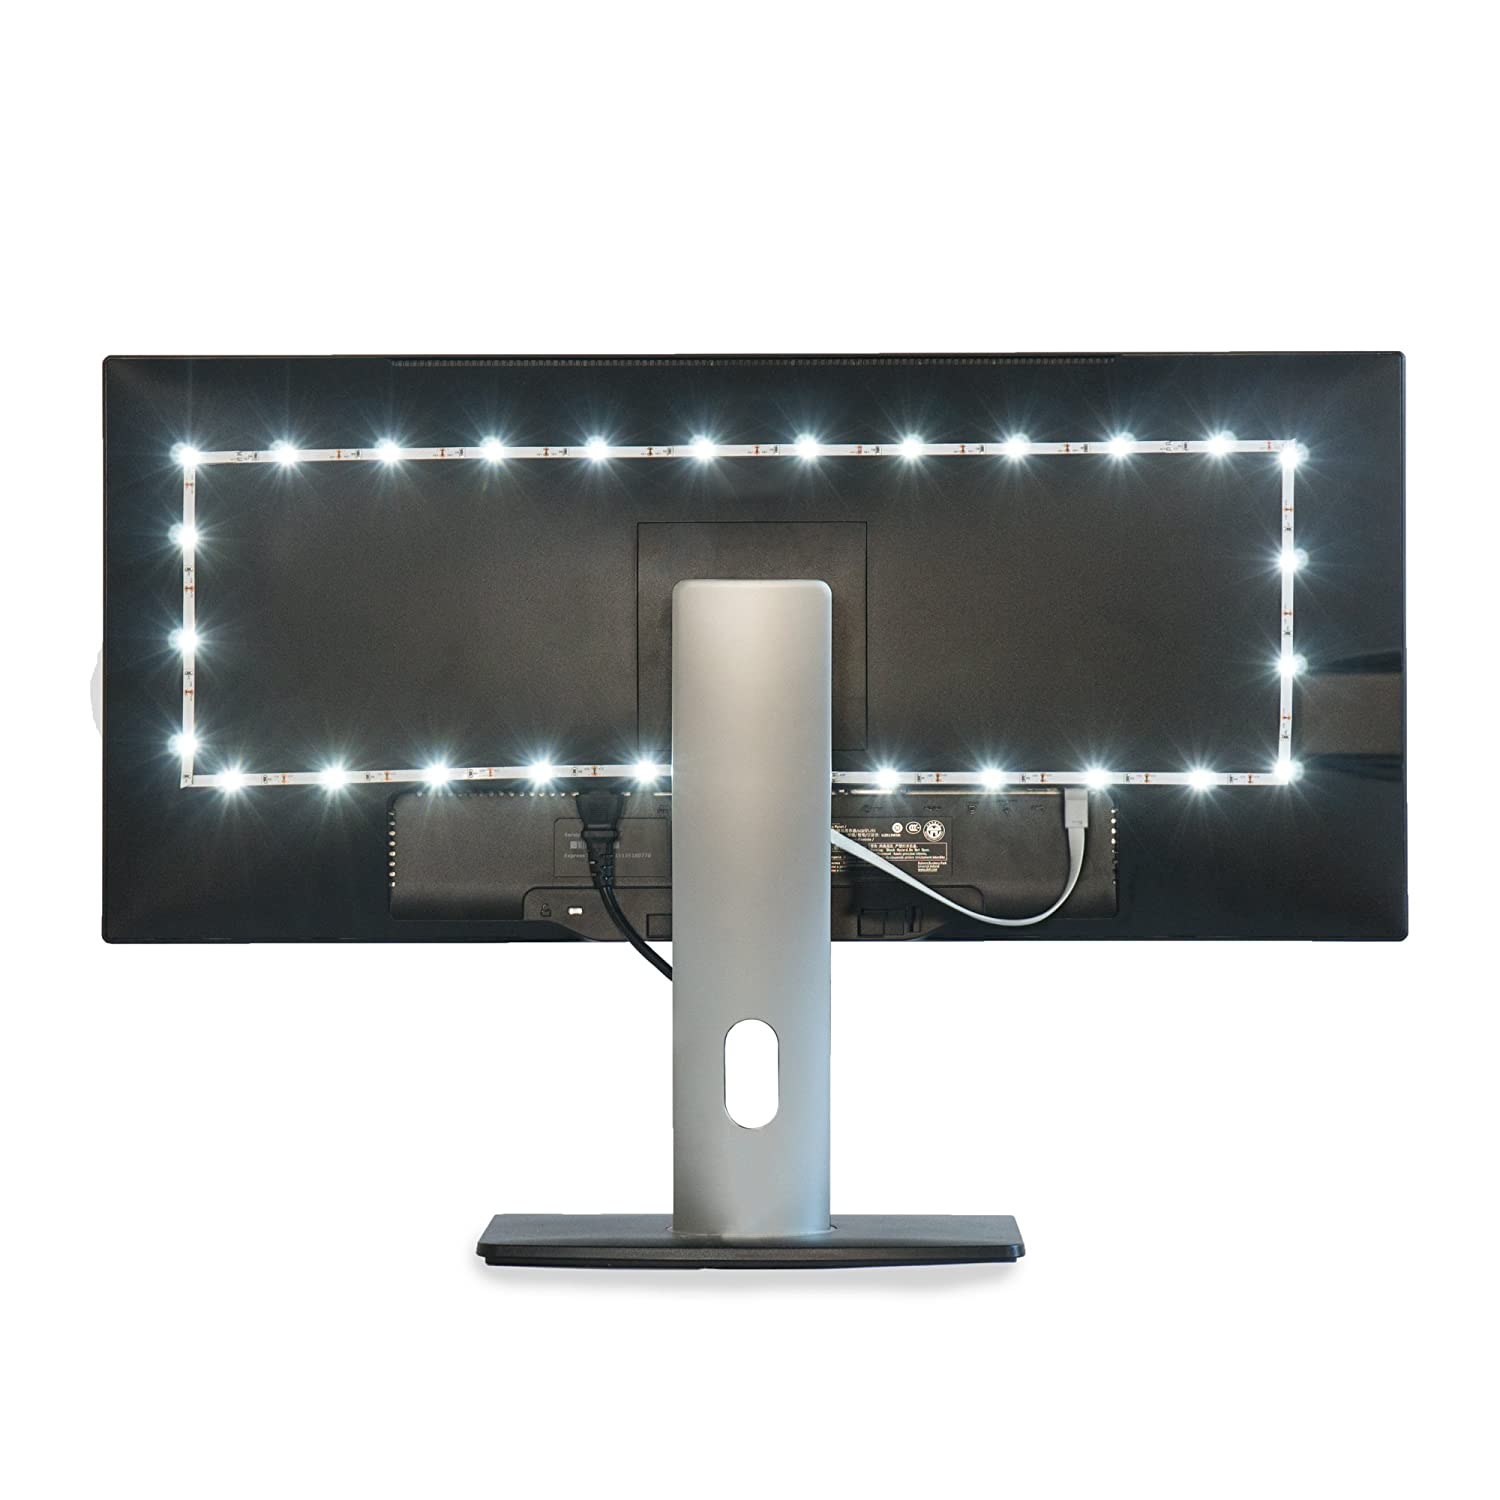 "Luminoodle TV Bias Lighting - USB Powered LED Light Strip Kit - TV Backlight Home Theater Light System - White - Medium (24"" - 29"" TV)"